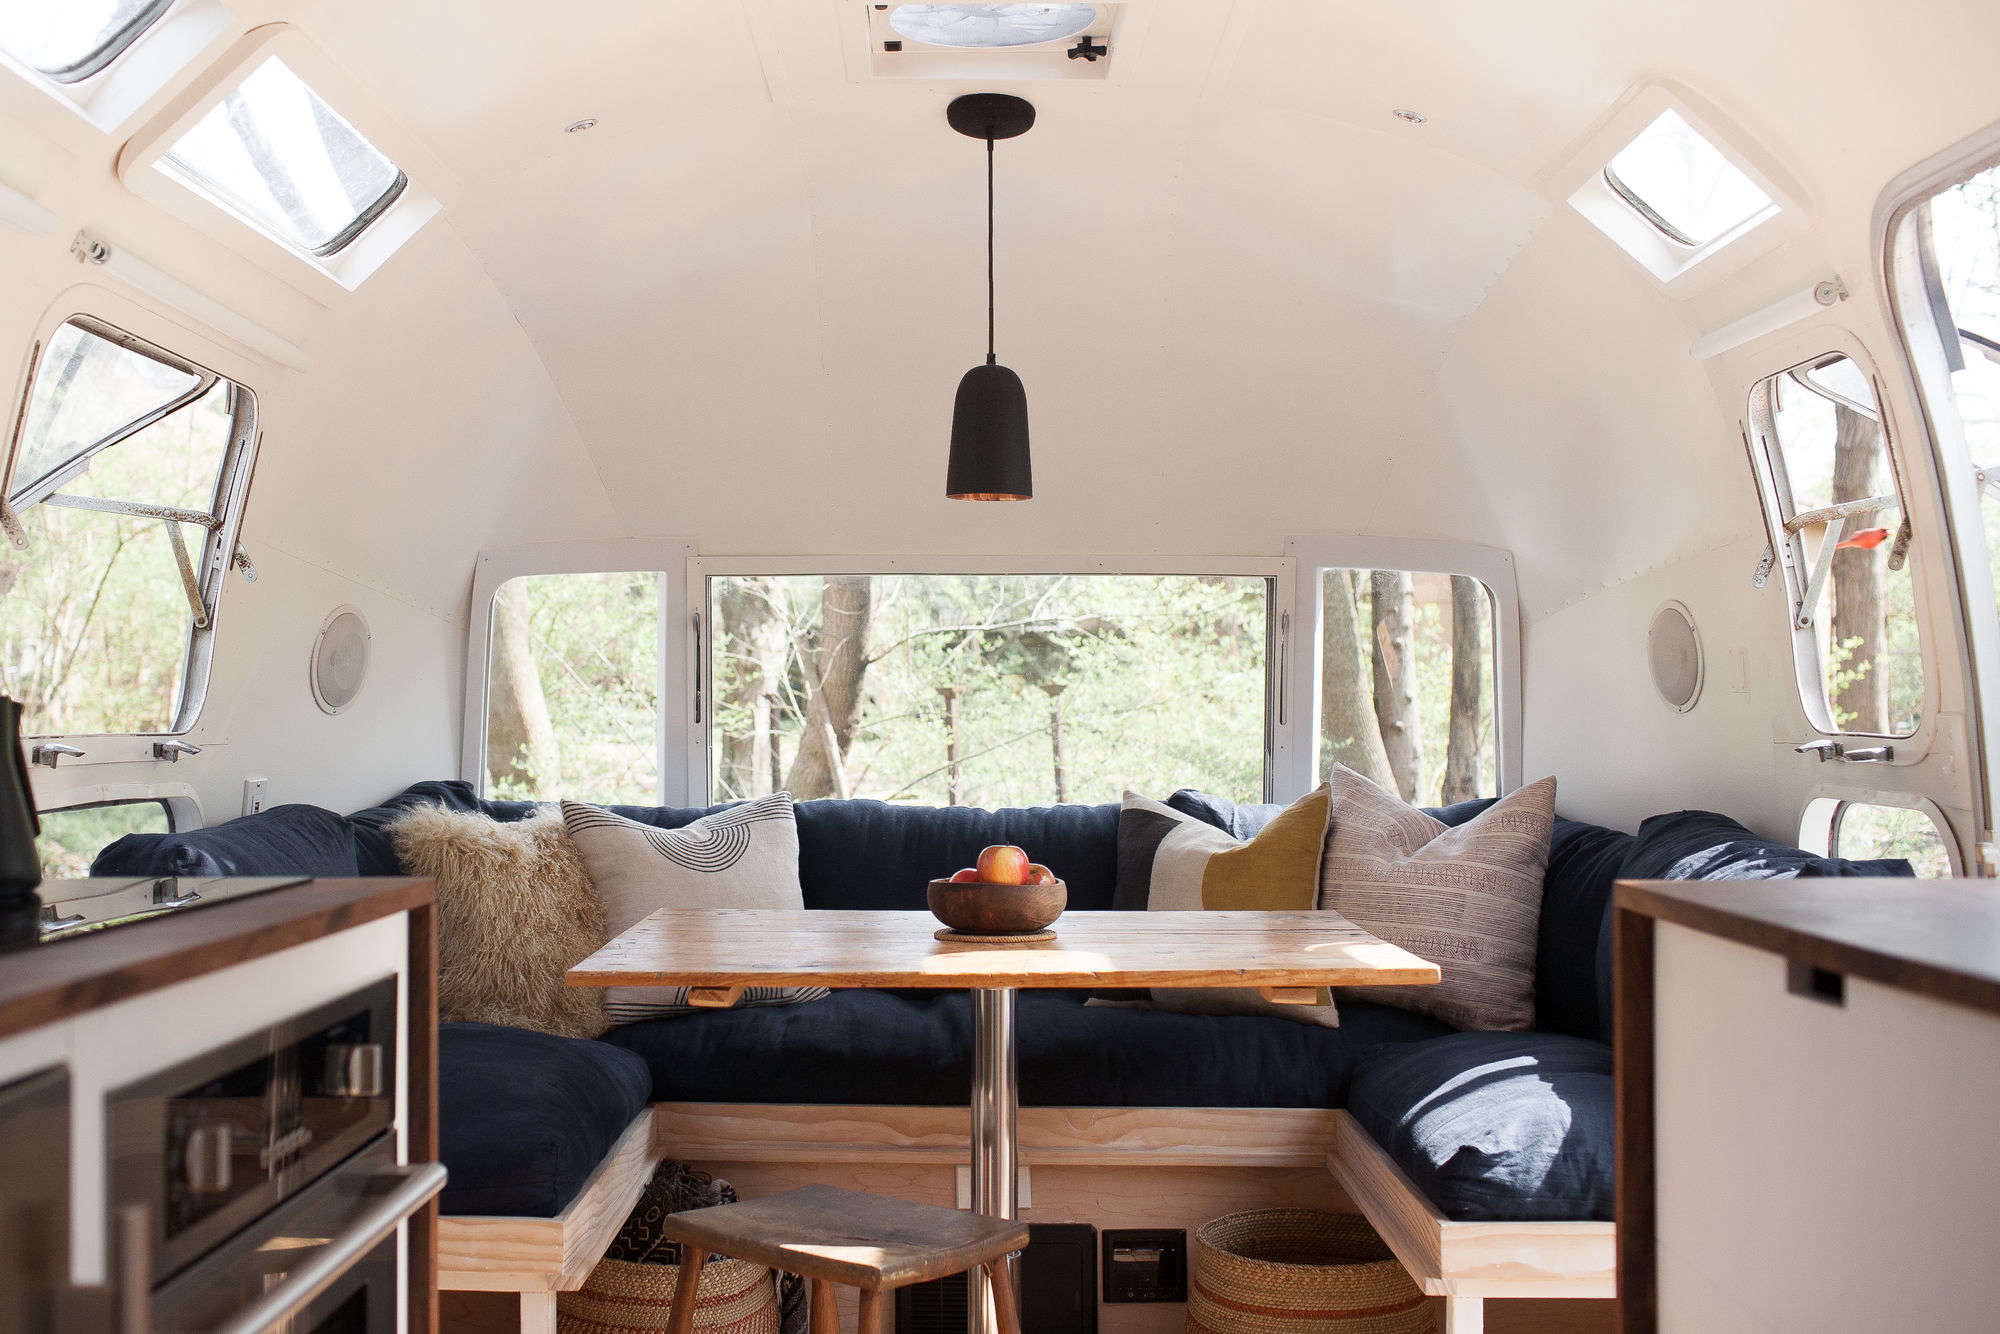 Vintage airstream custom built for modern living on the go